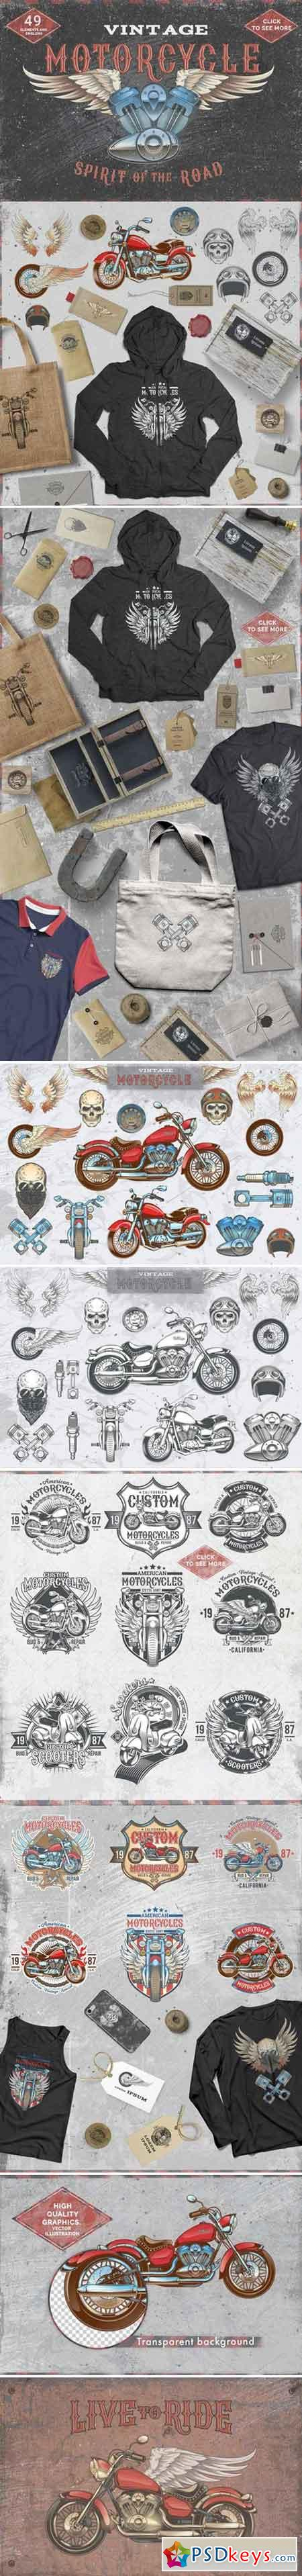 Set Vintage motorcycle labels 2045223